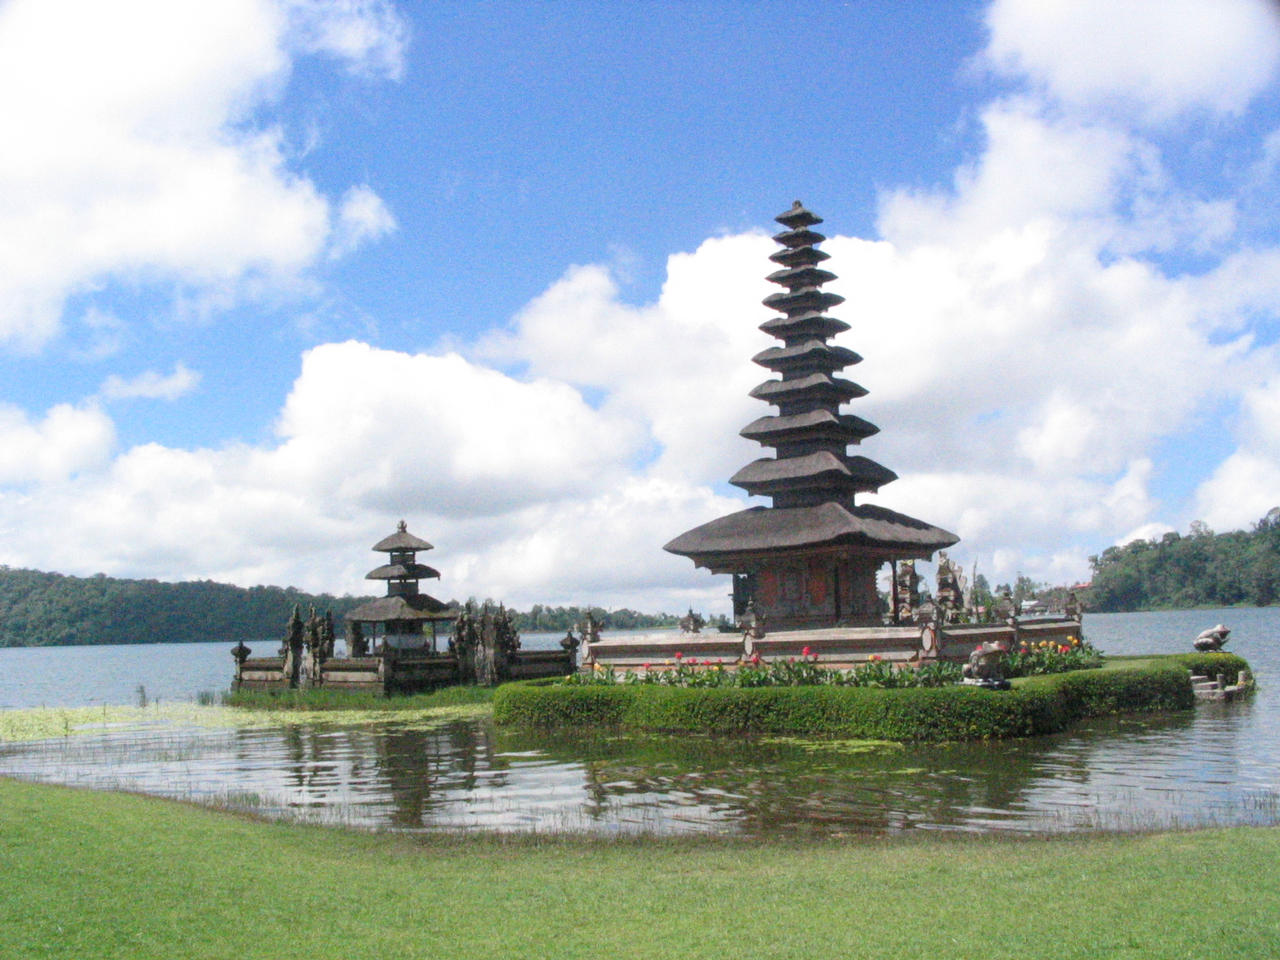 The Heart of the Balinese Trip